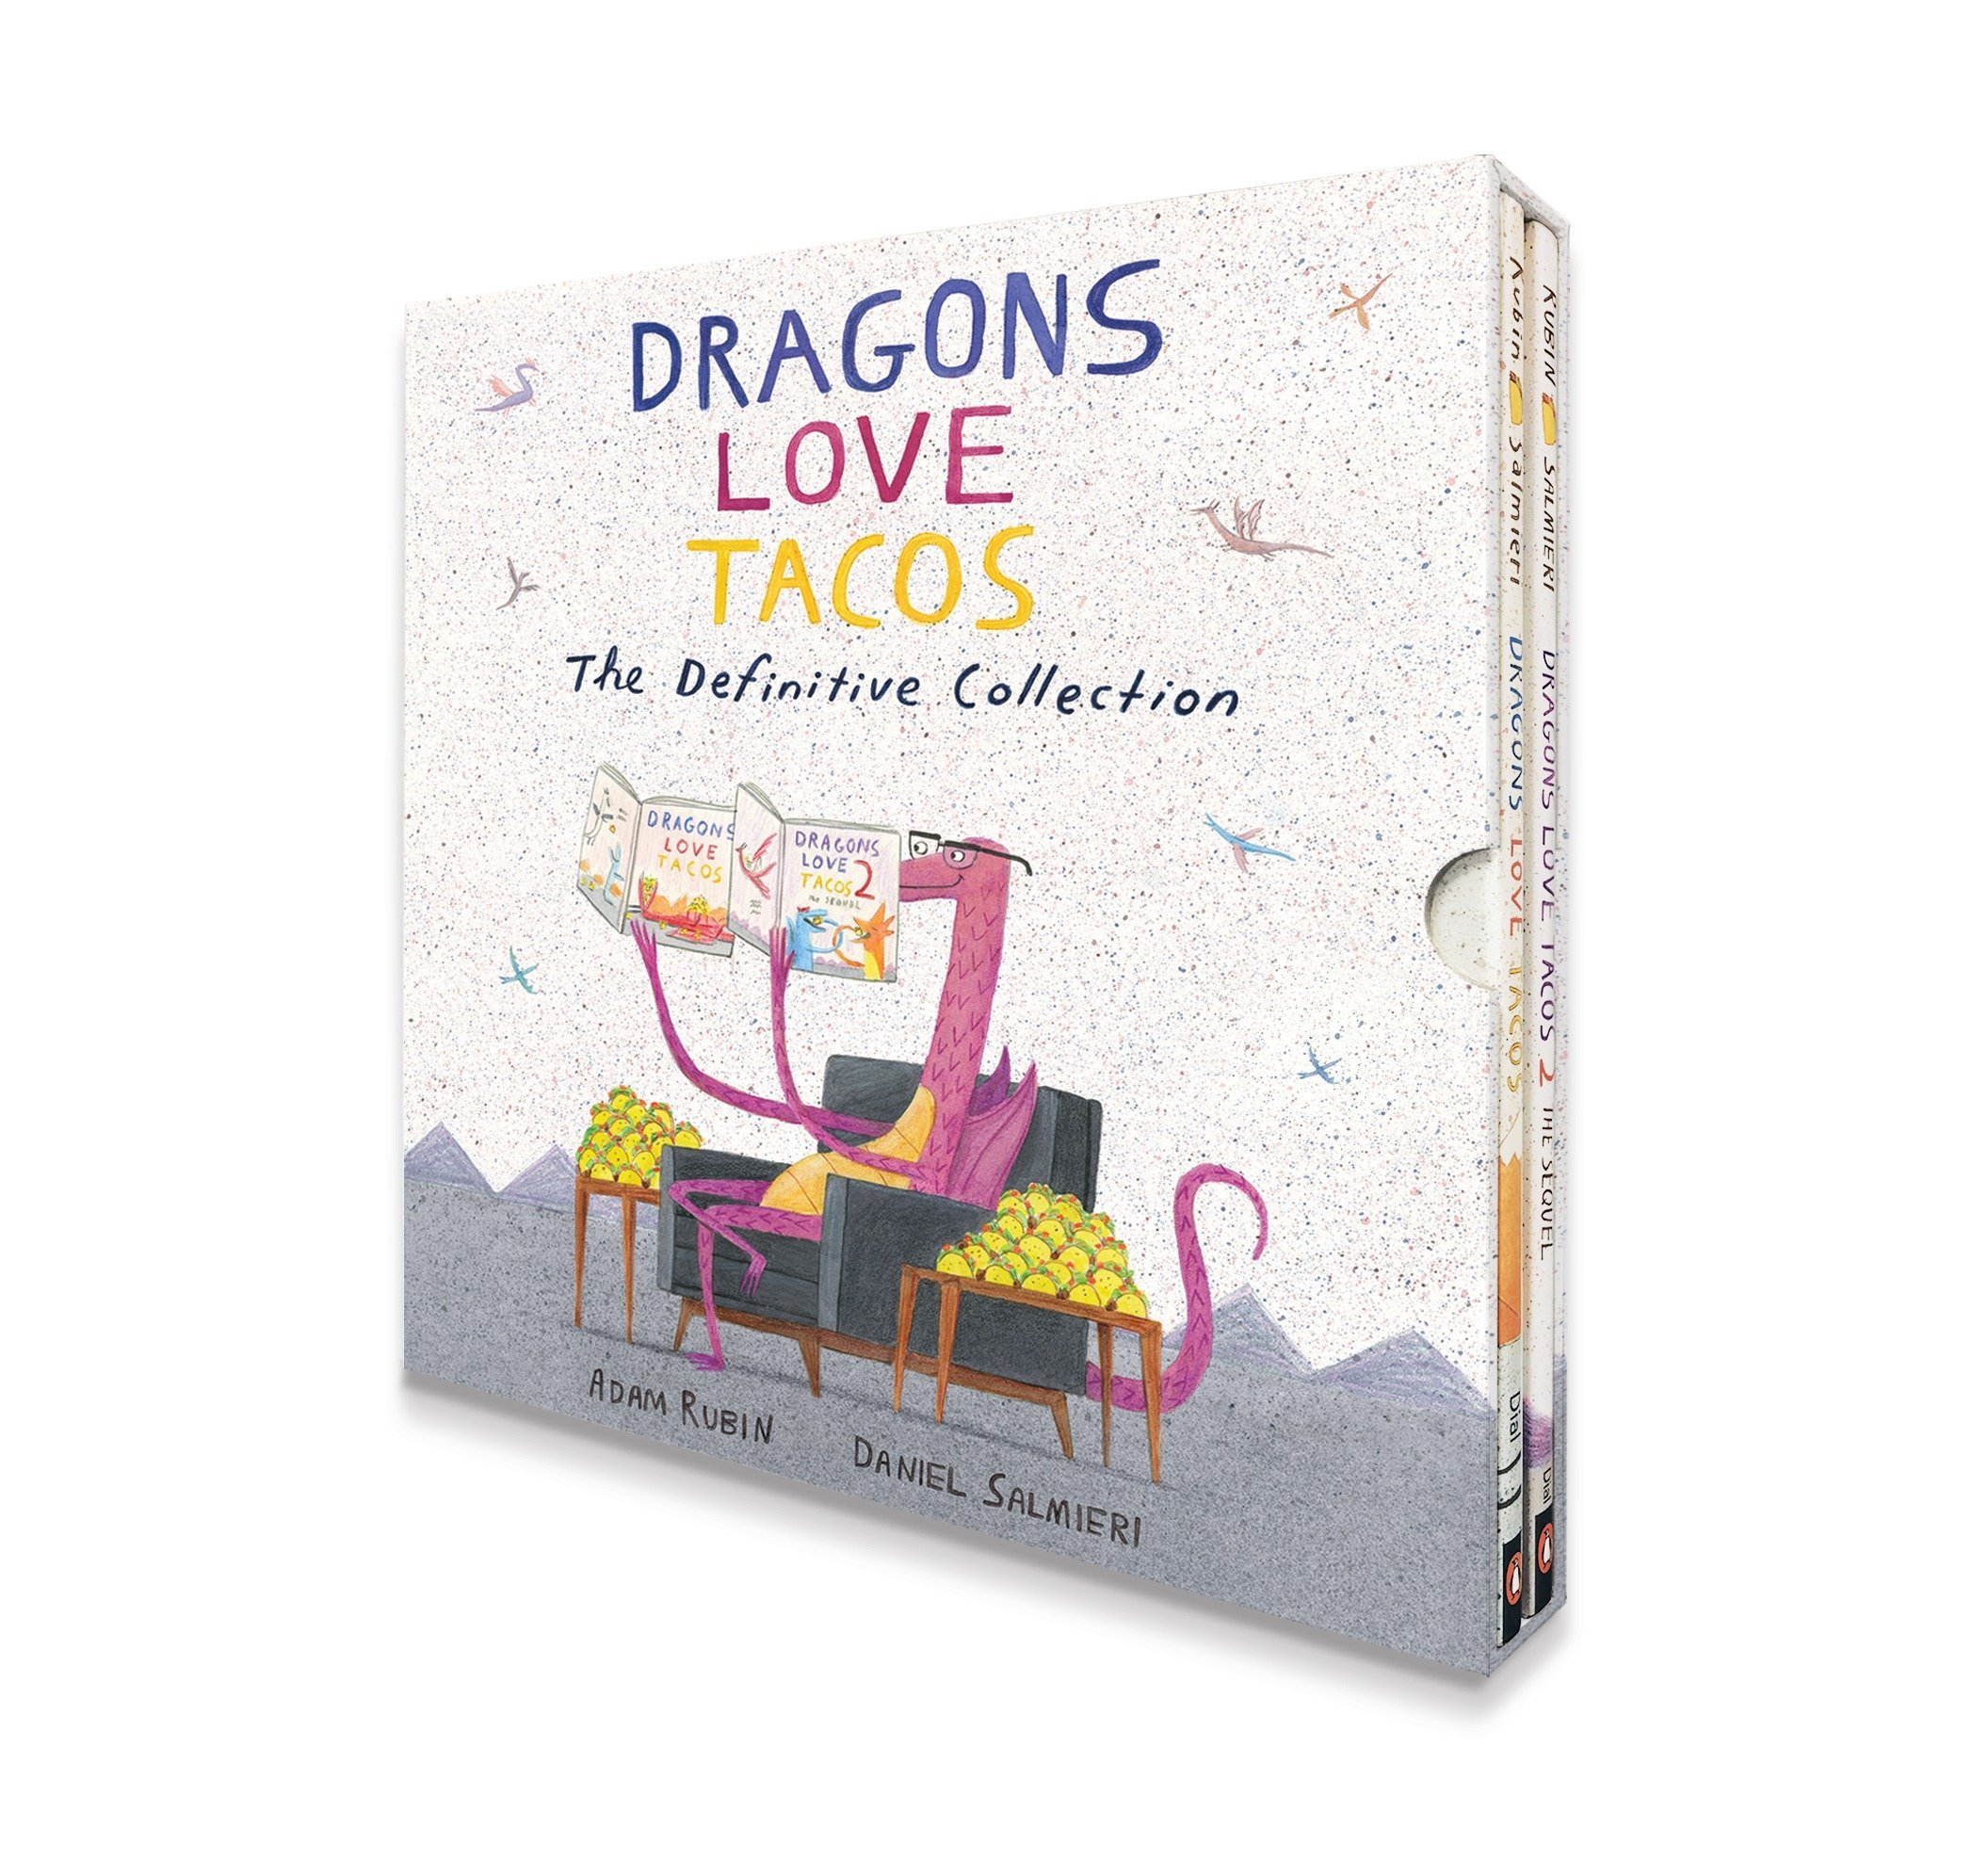 Dragons Love Tacos: The Definitive Collection: Adam Rubin, Daniel Salmieri:  9780735230170: Amazon.com: Books